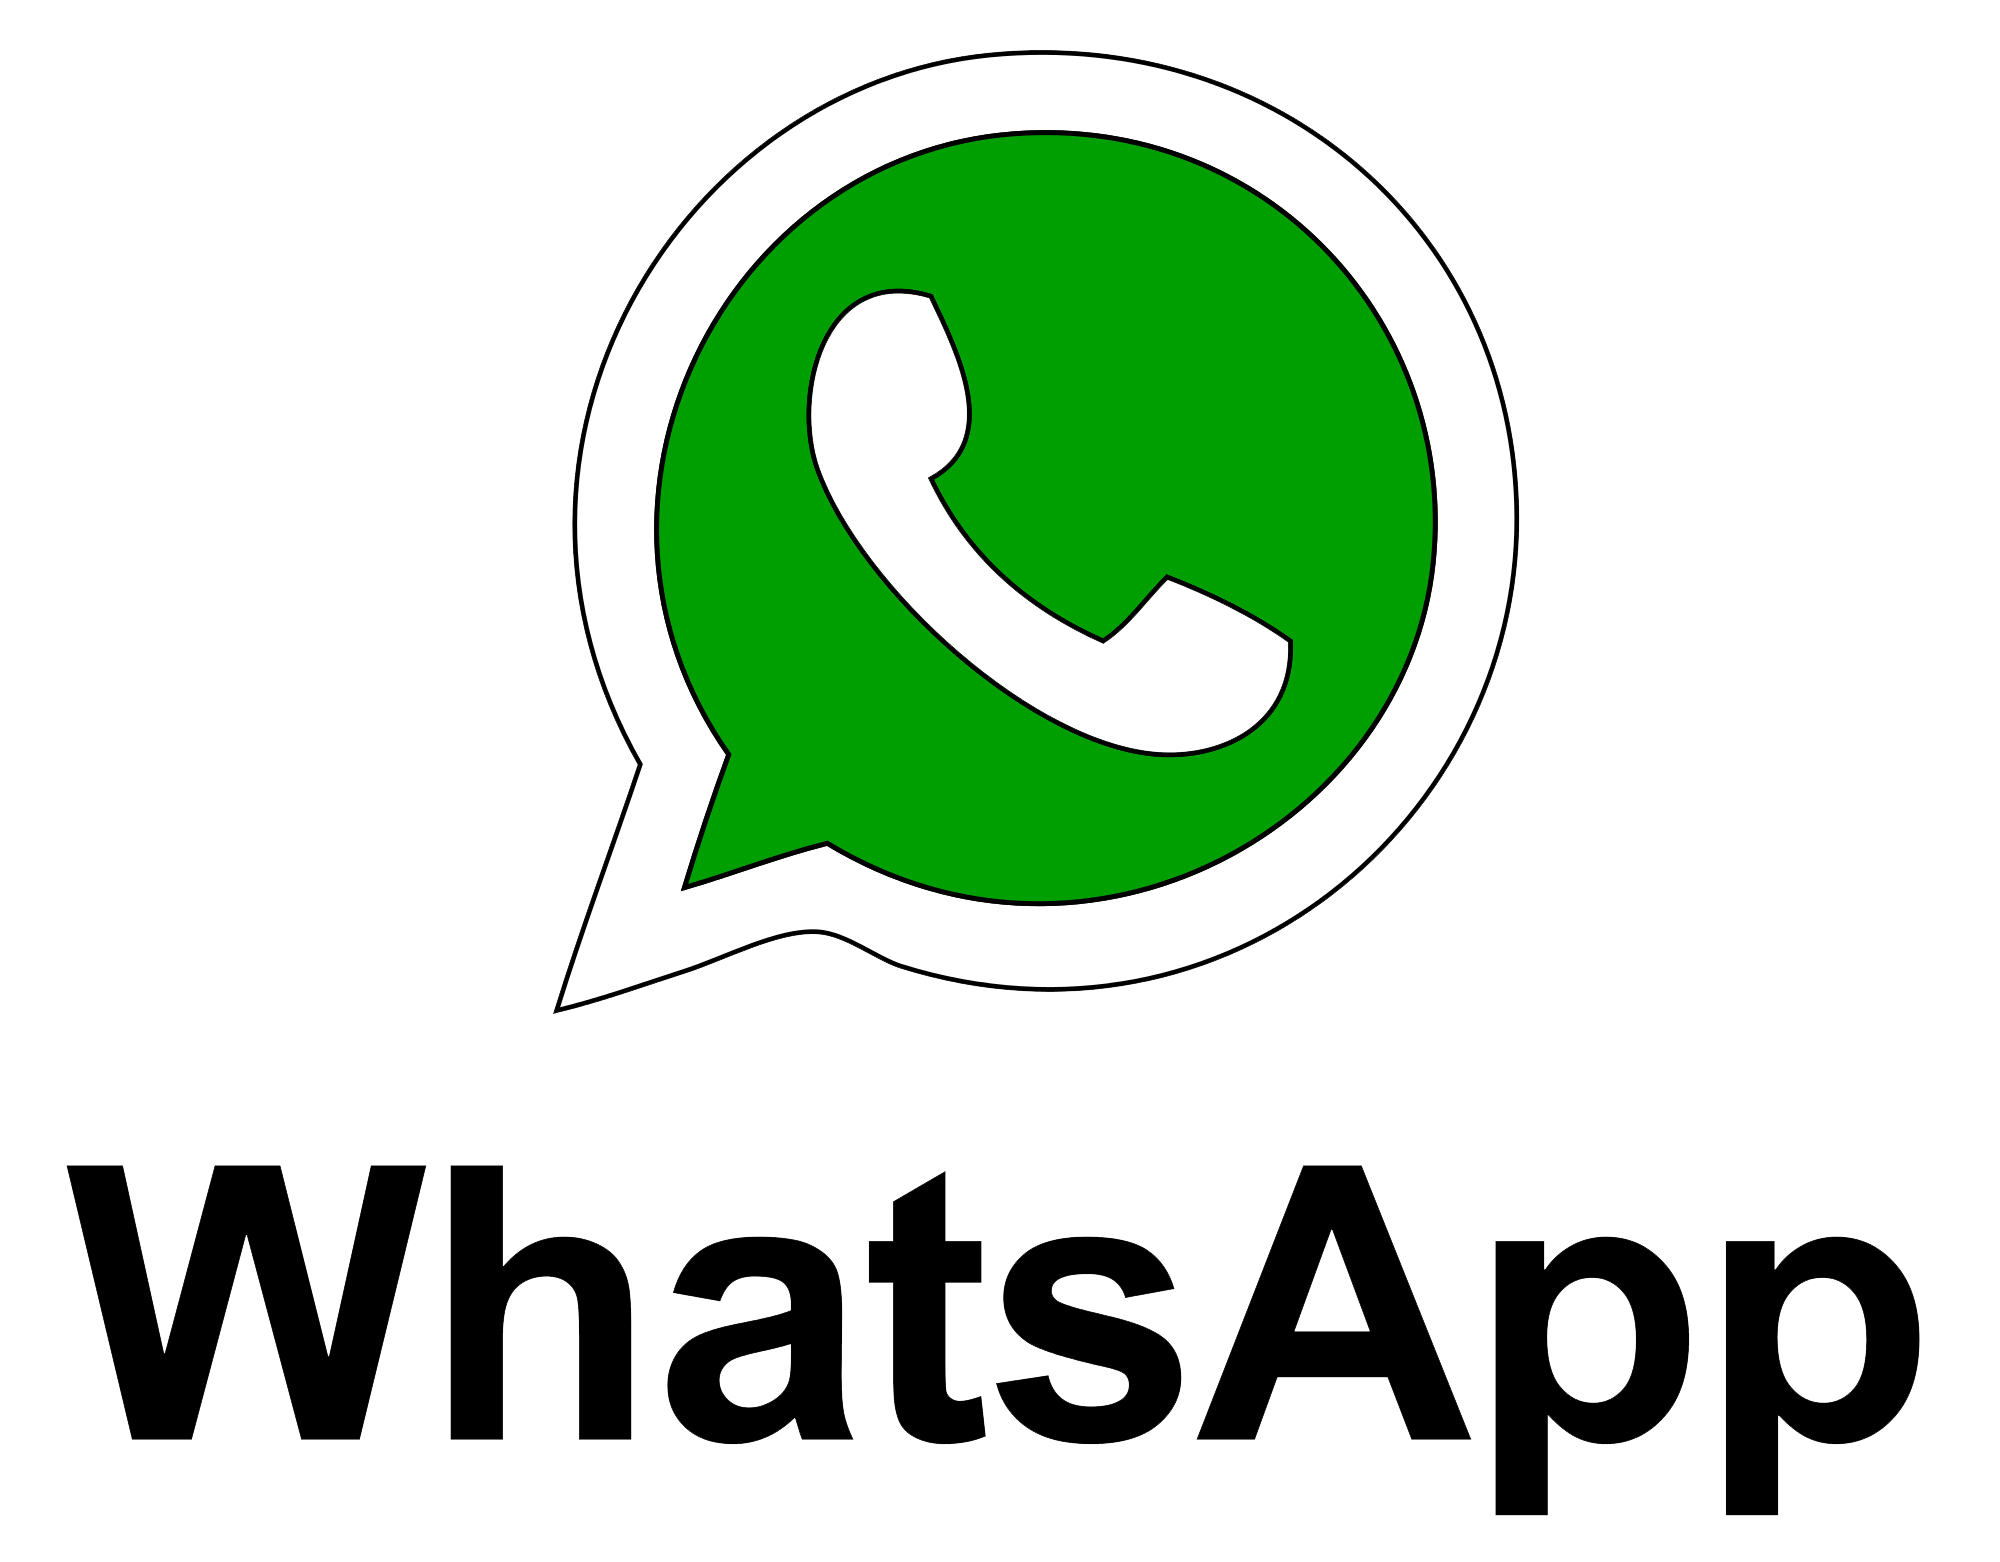 Simbolo whatsapp png. Recover deleted messages on